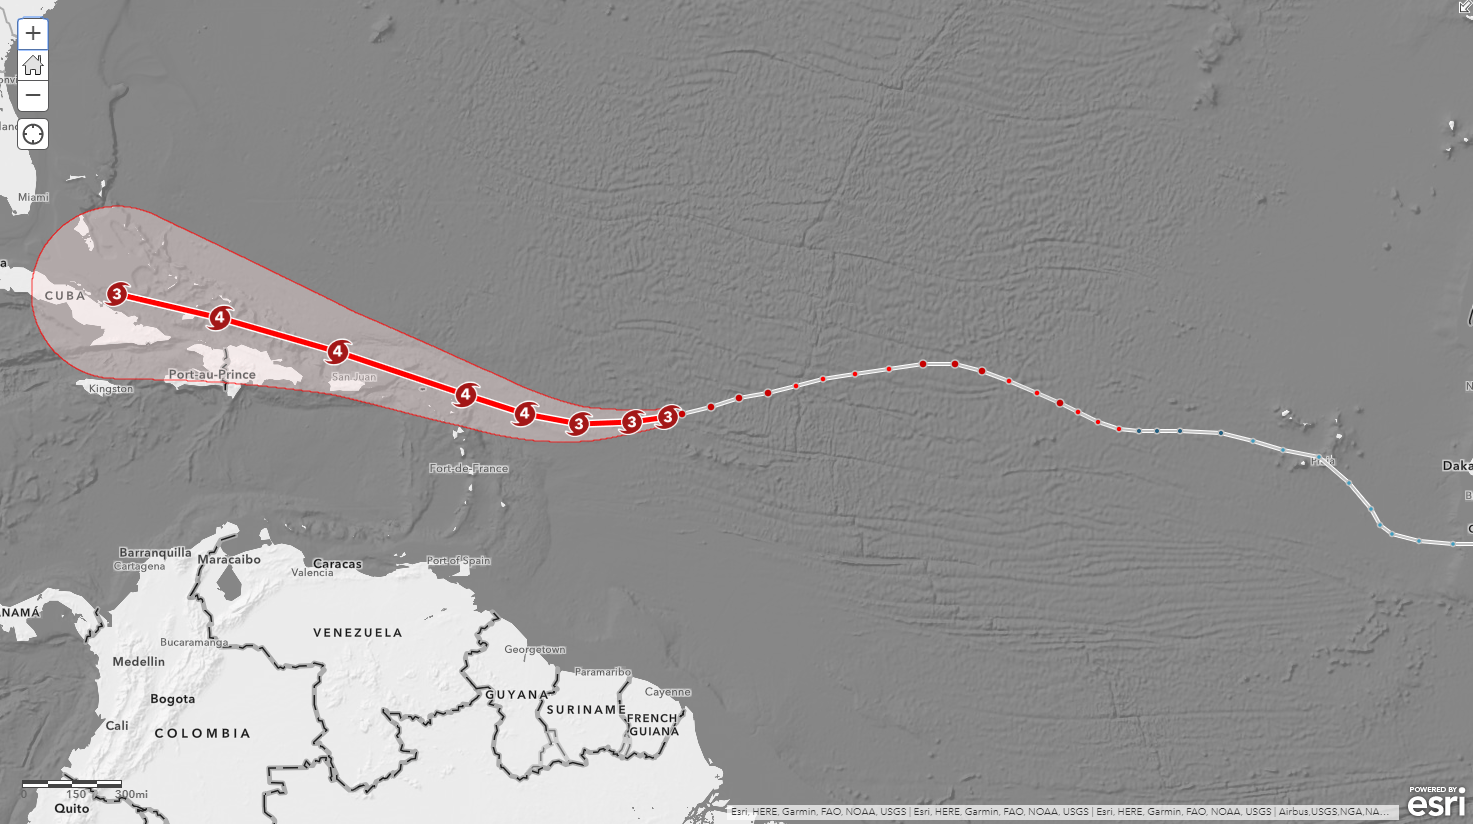 Hurricane Irma at 18,000,000